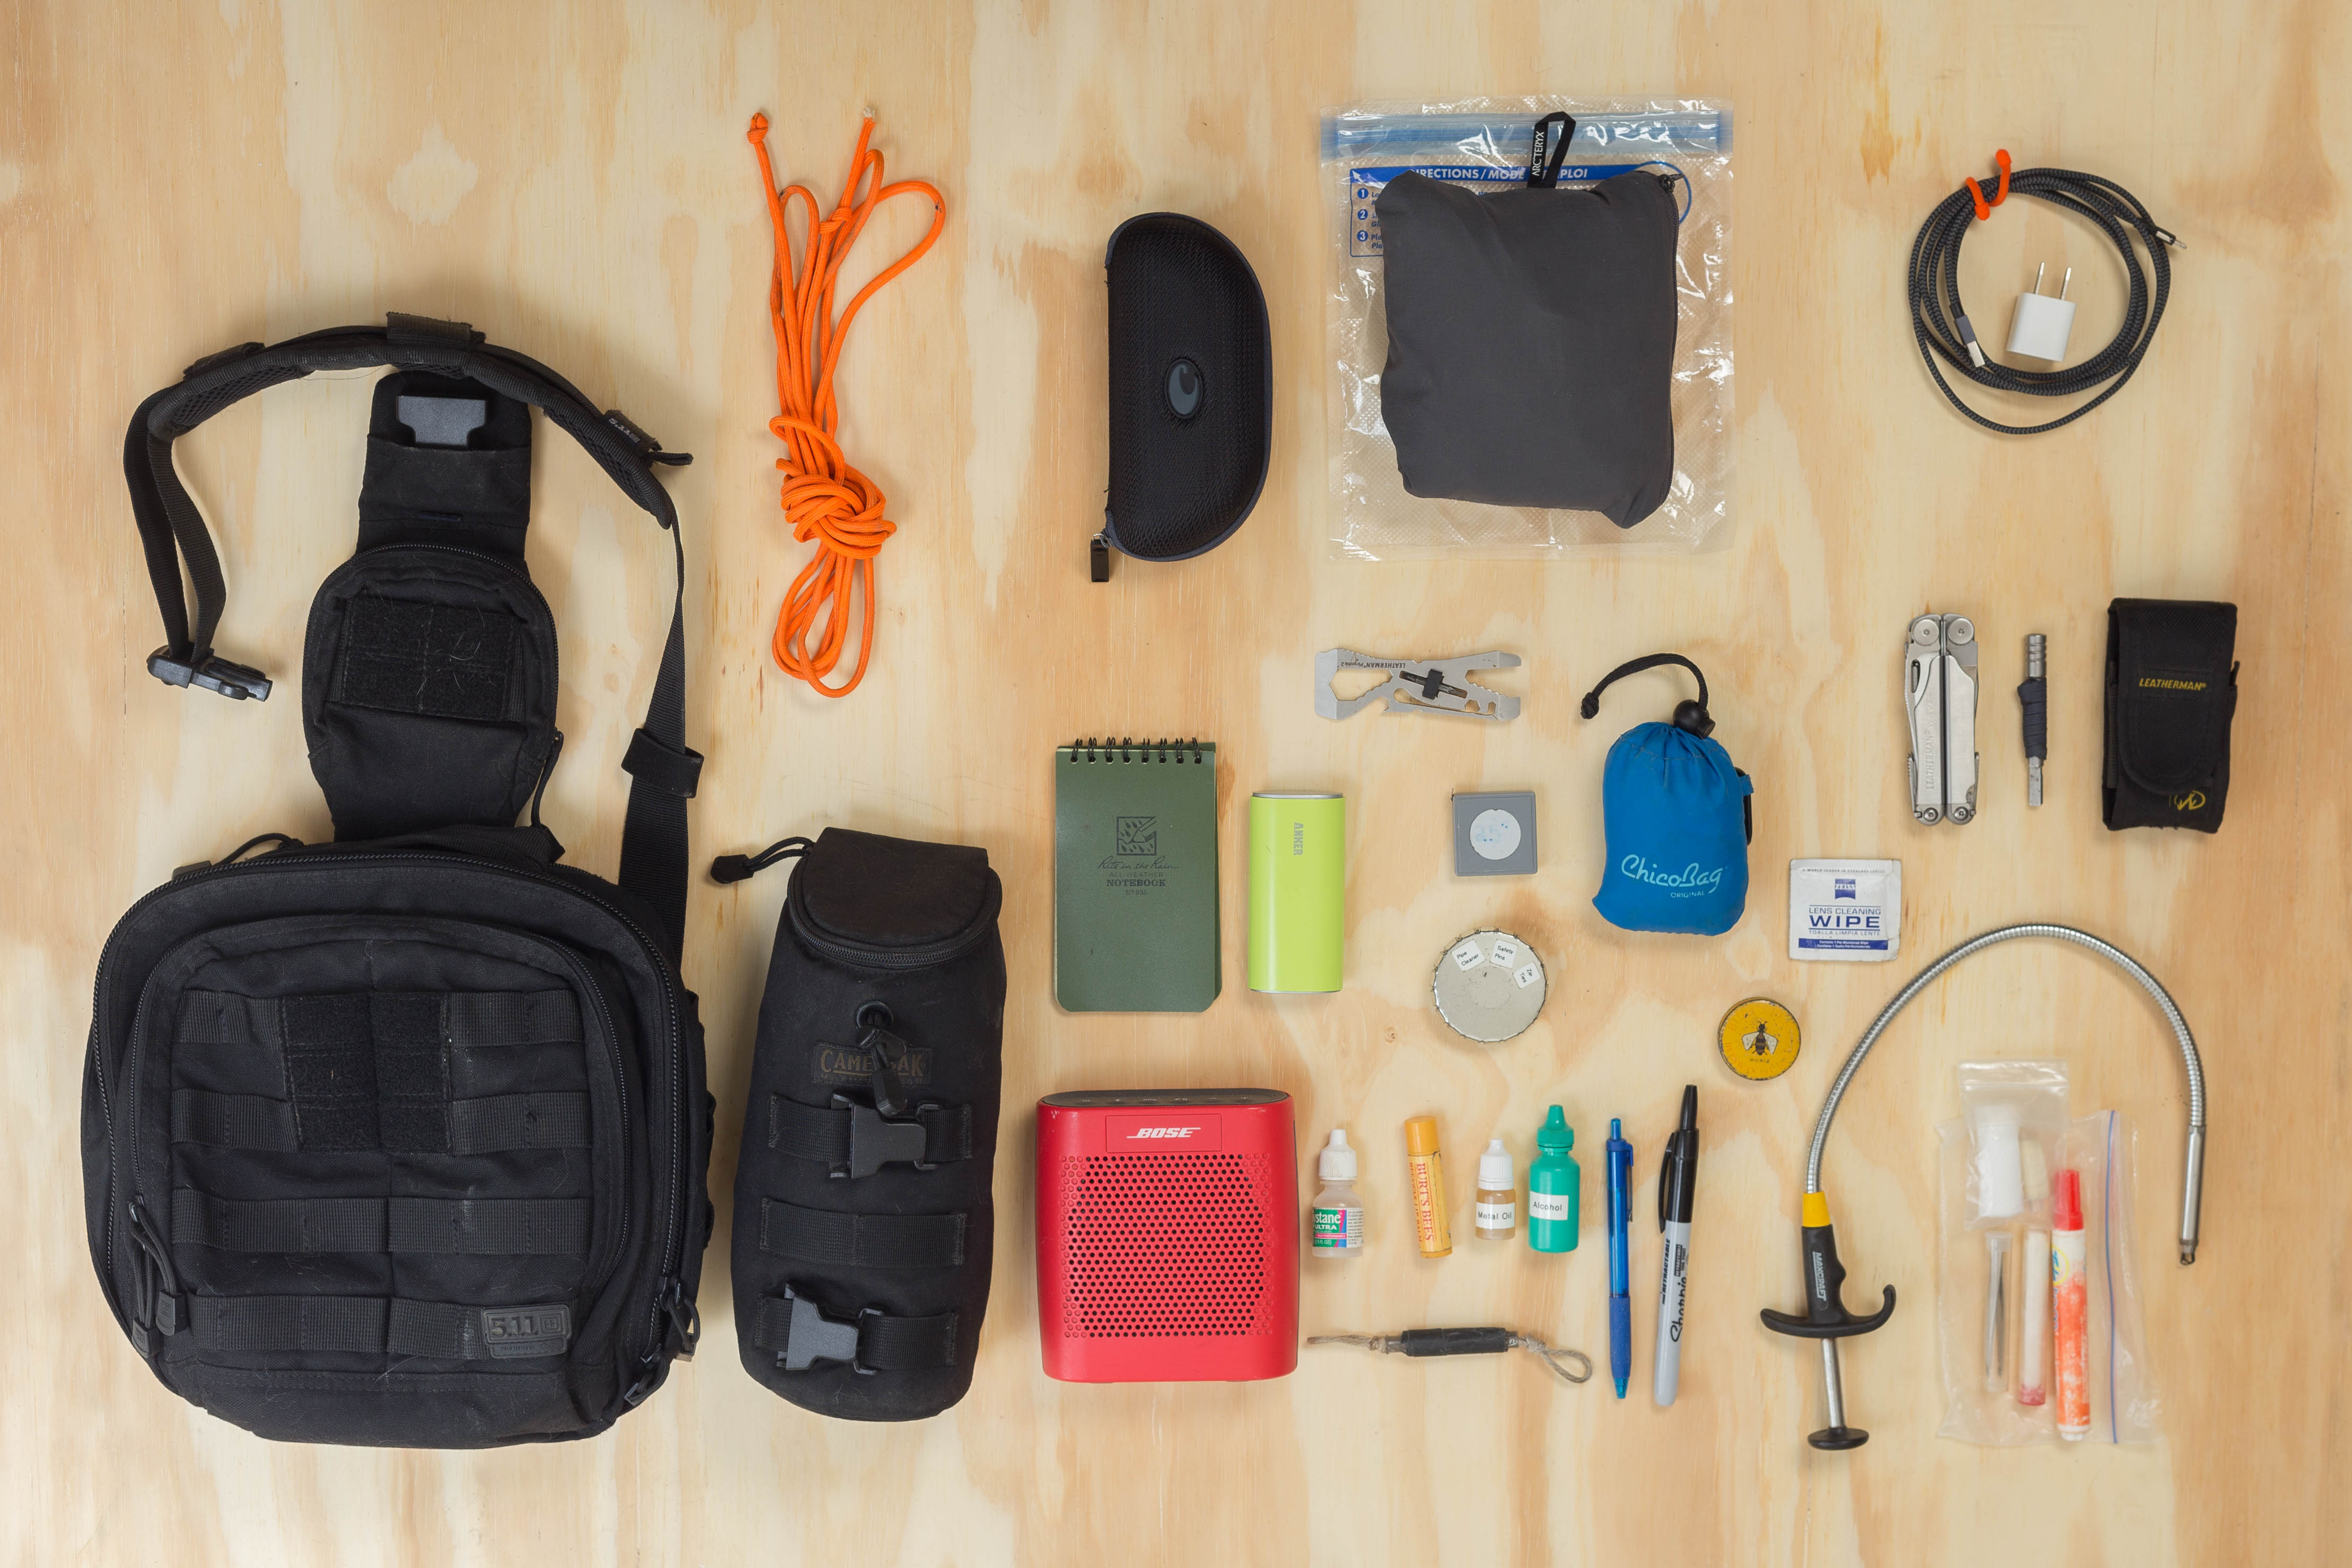 What's in My Bag? — Dominic Duncombe